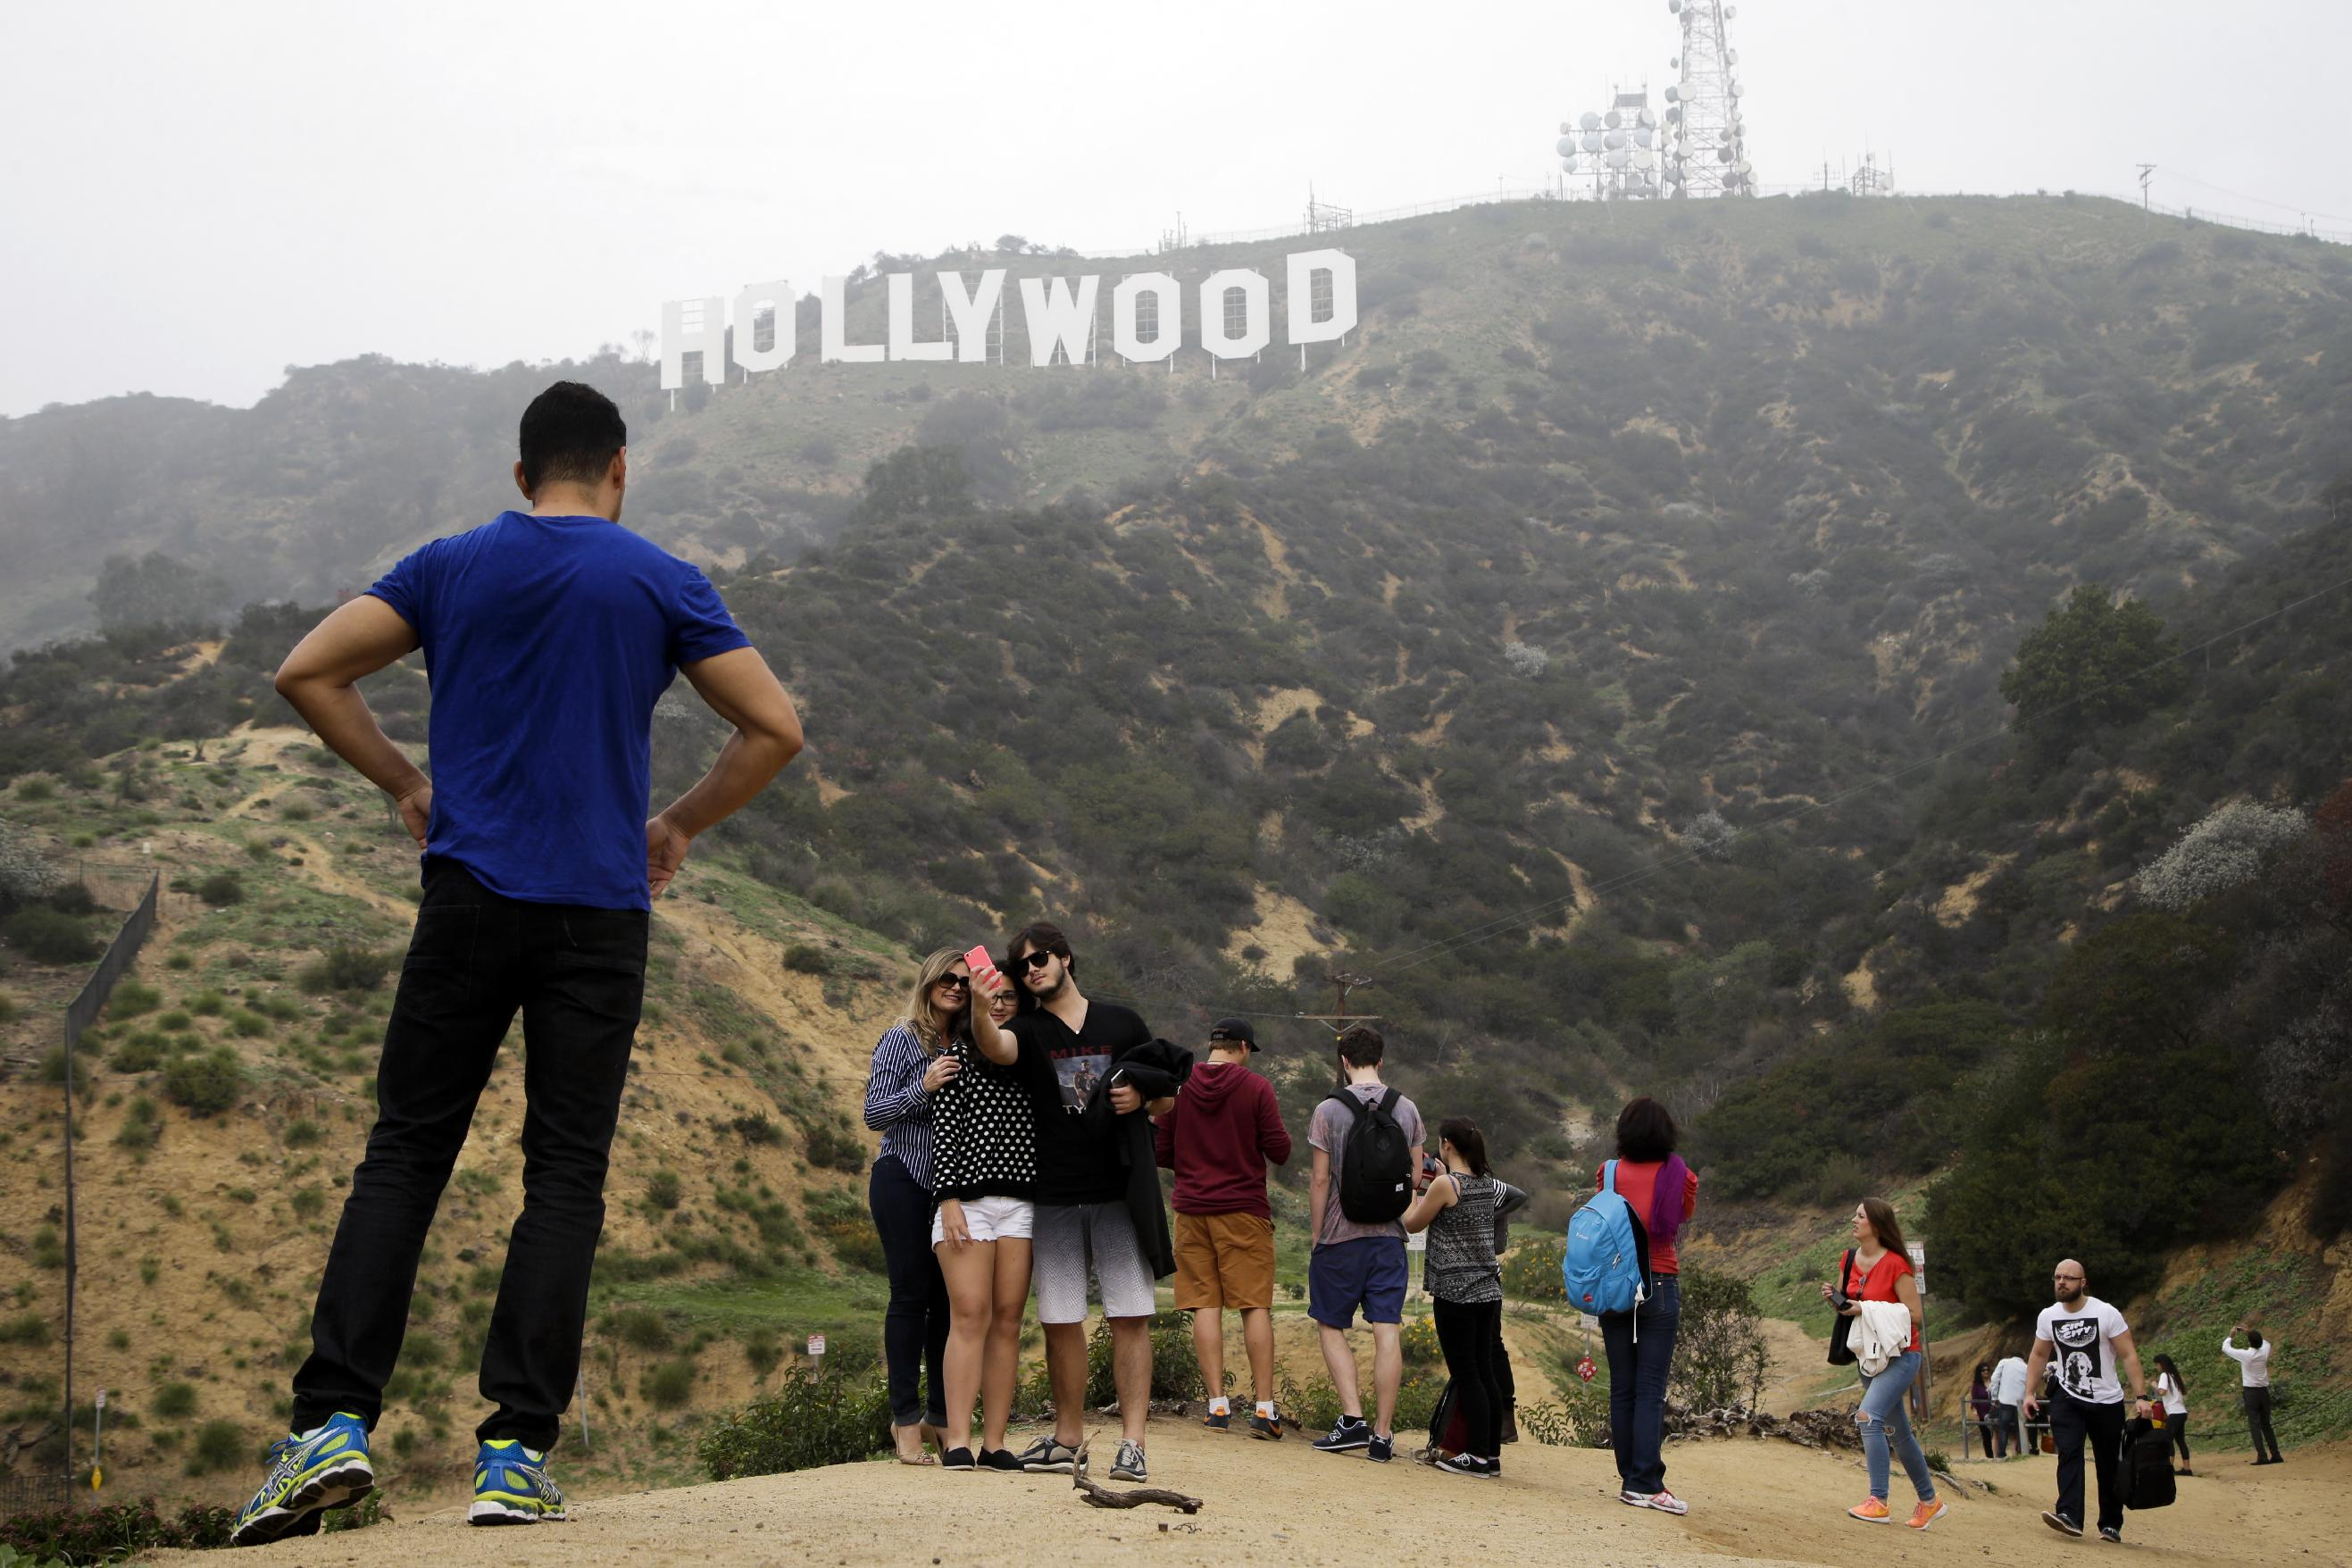 Seekers of the Hollywood Sign disrupt nearby neighborhood